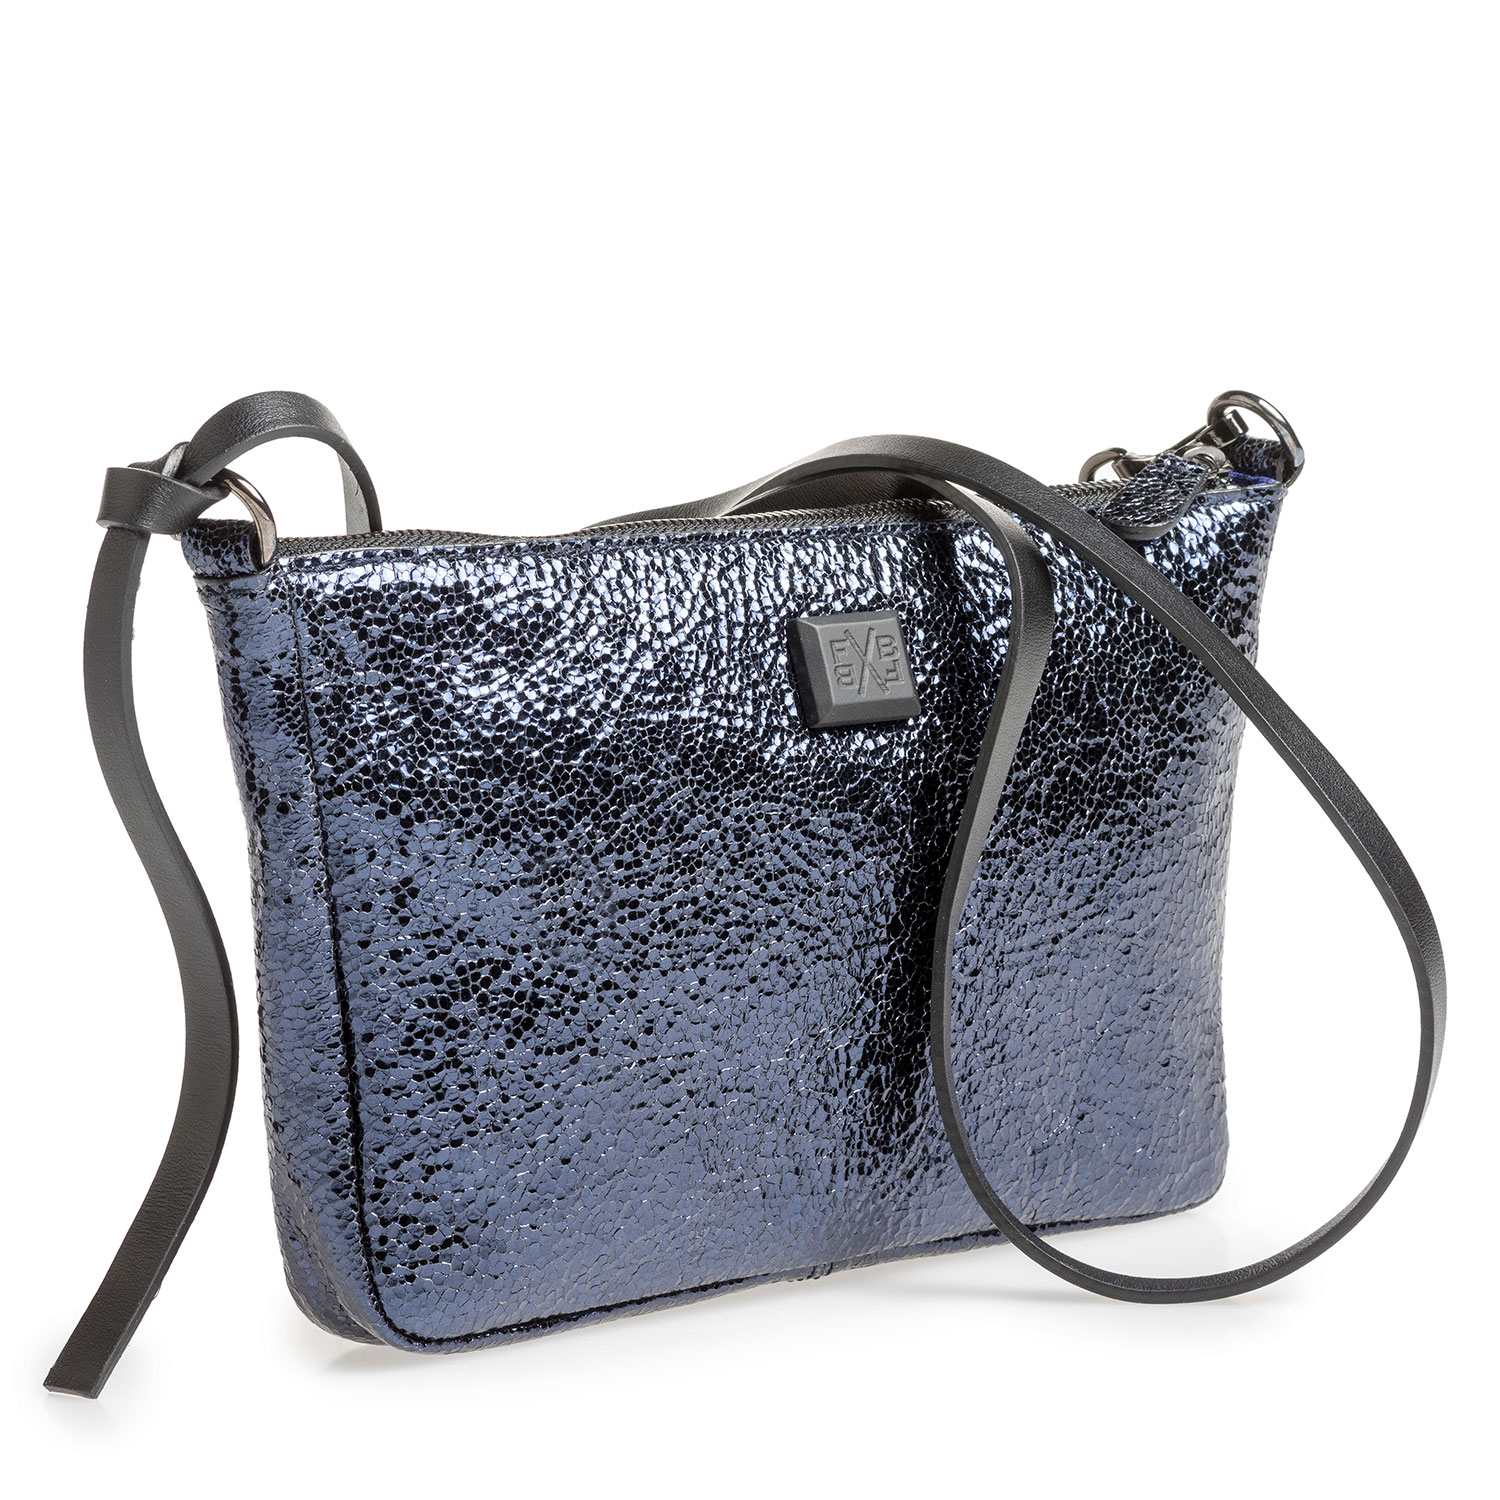 89019/11 - Dark blue leather bag with black print